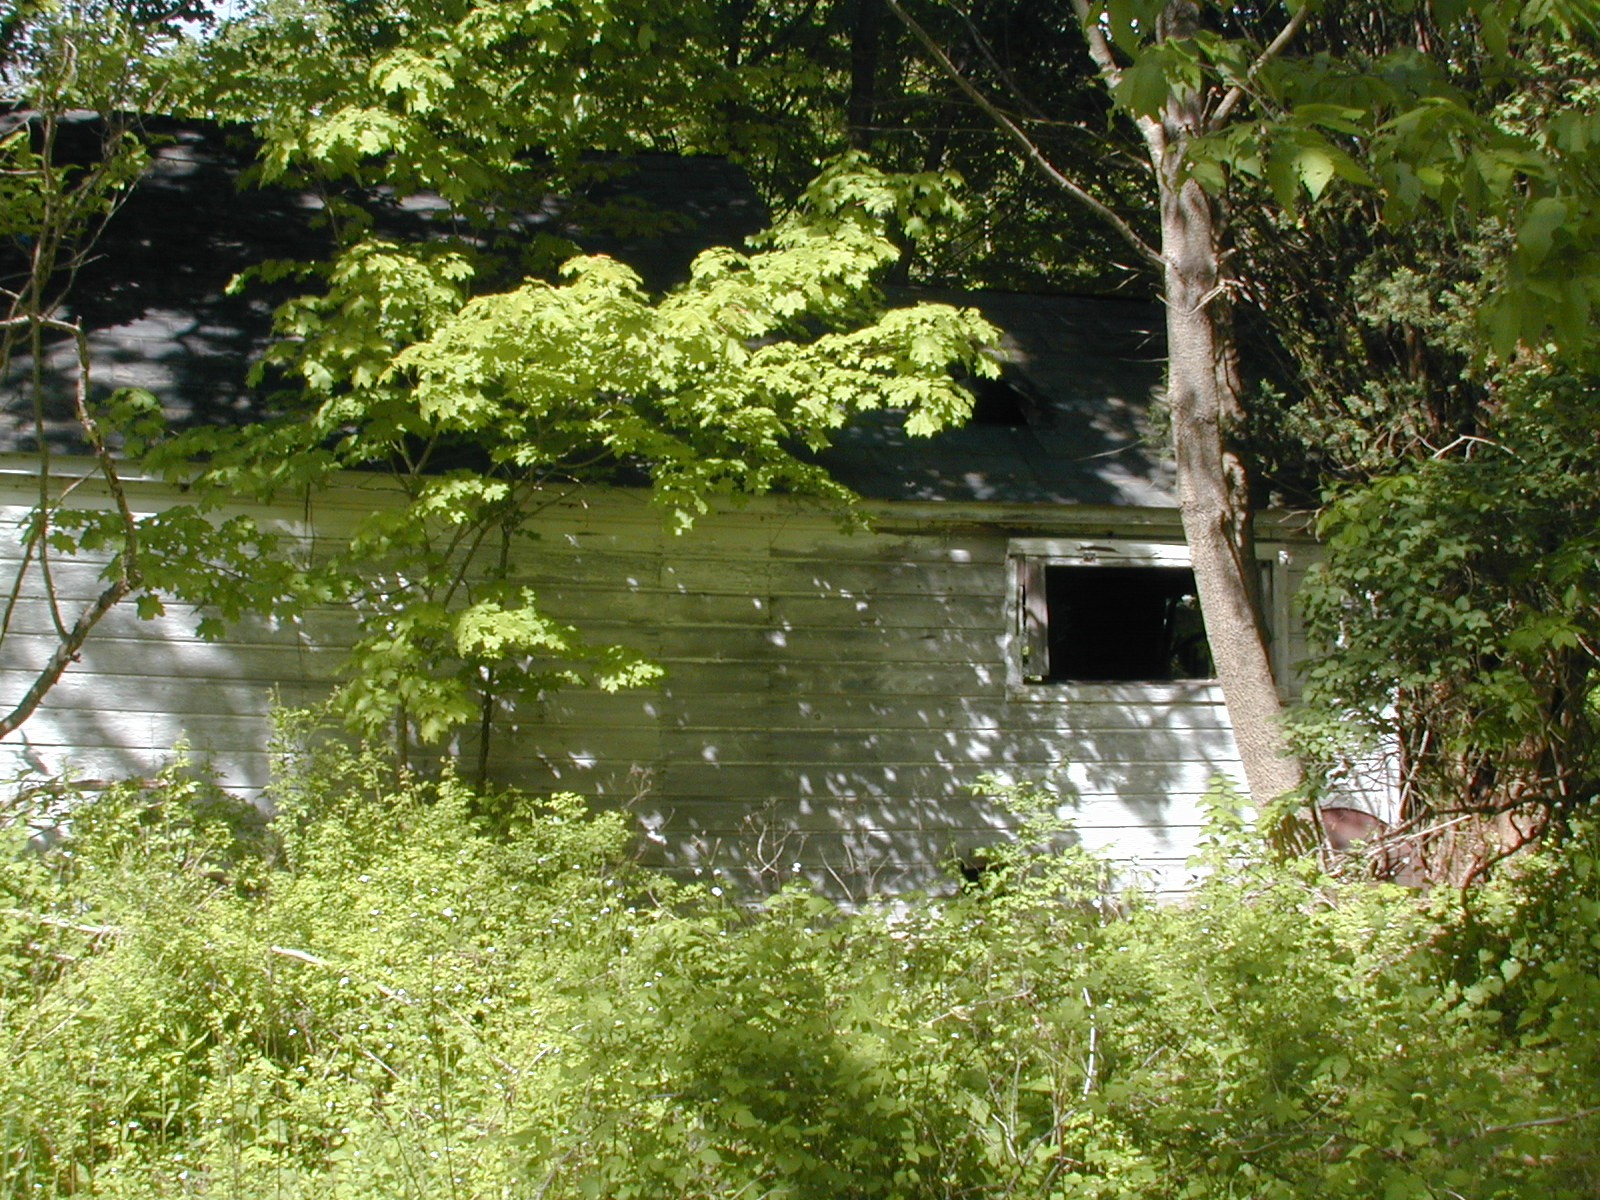 Rear view of the garage on the Depue property